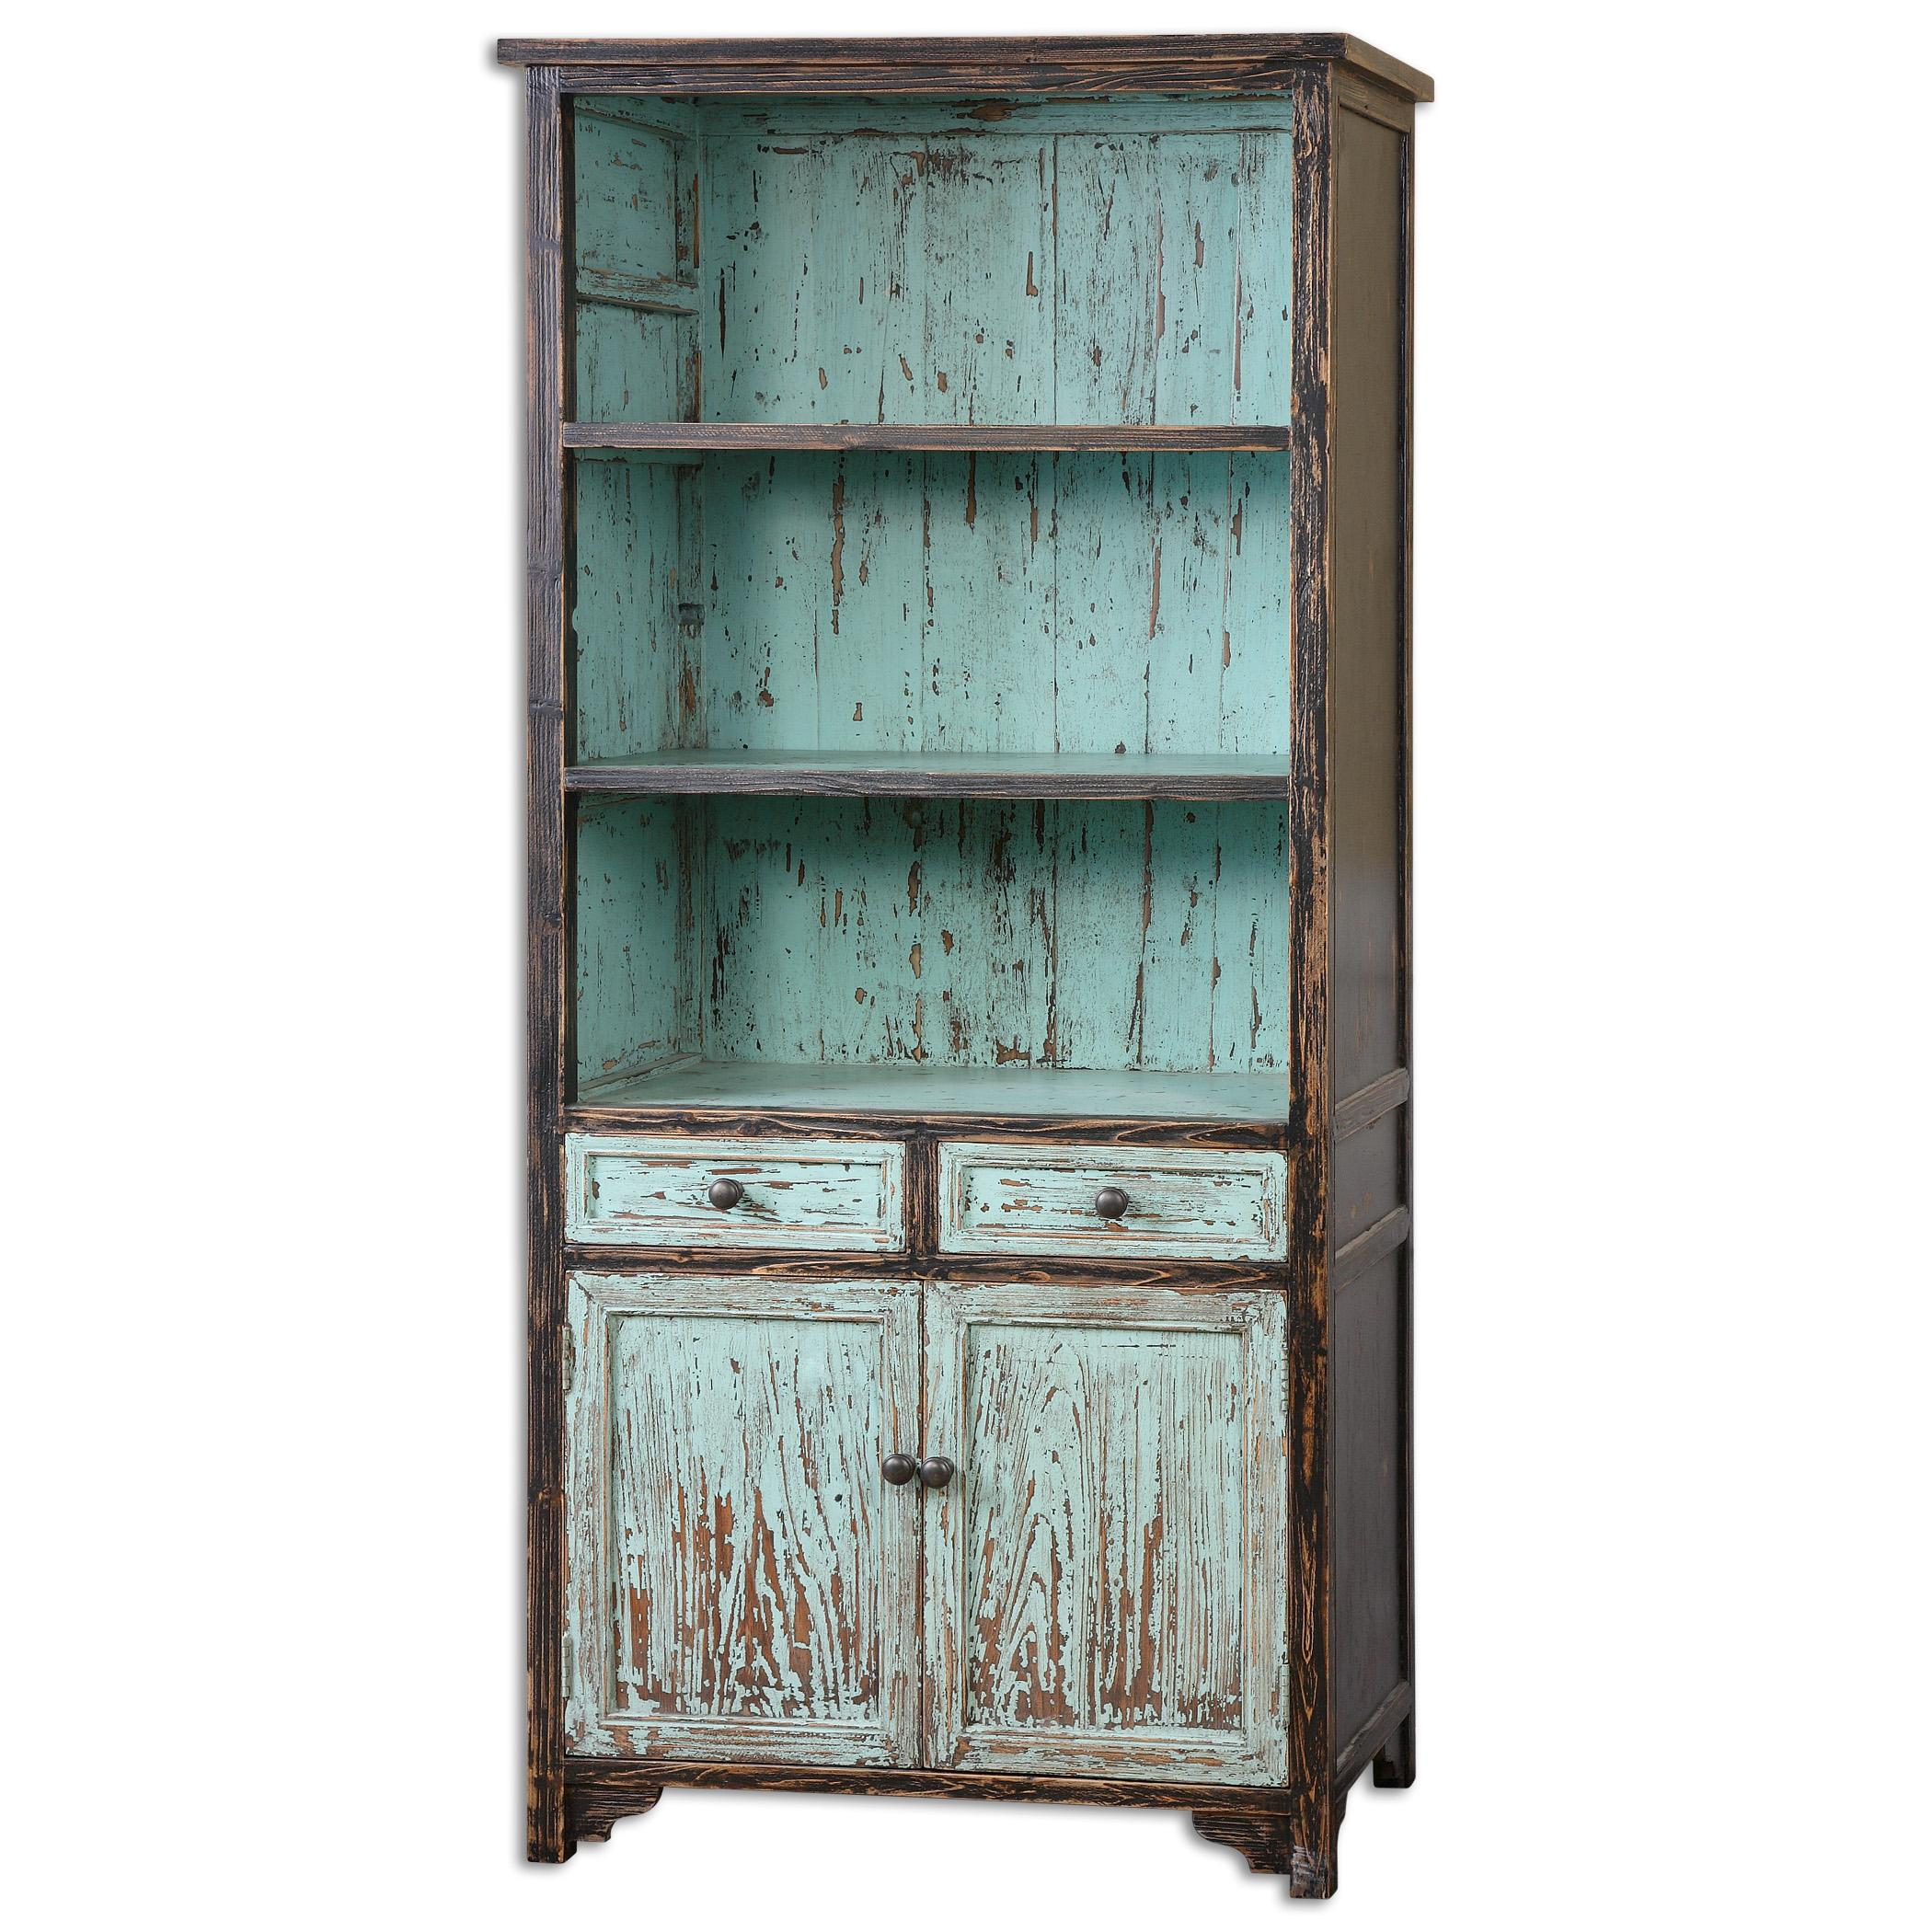 Uttermost Accent Furniture Dunixi Distressed Bookcase - Item Number: 24414